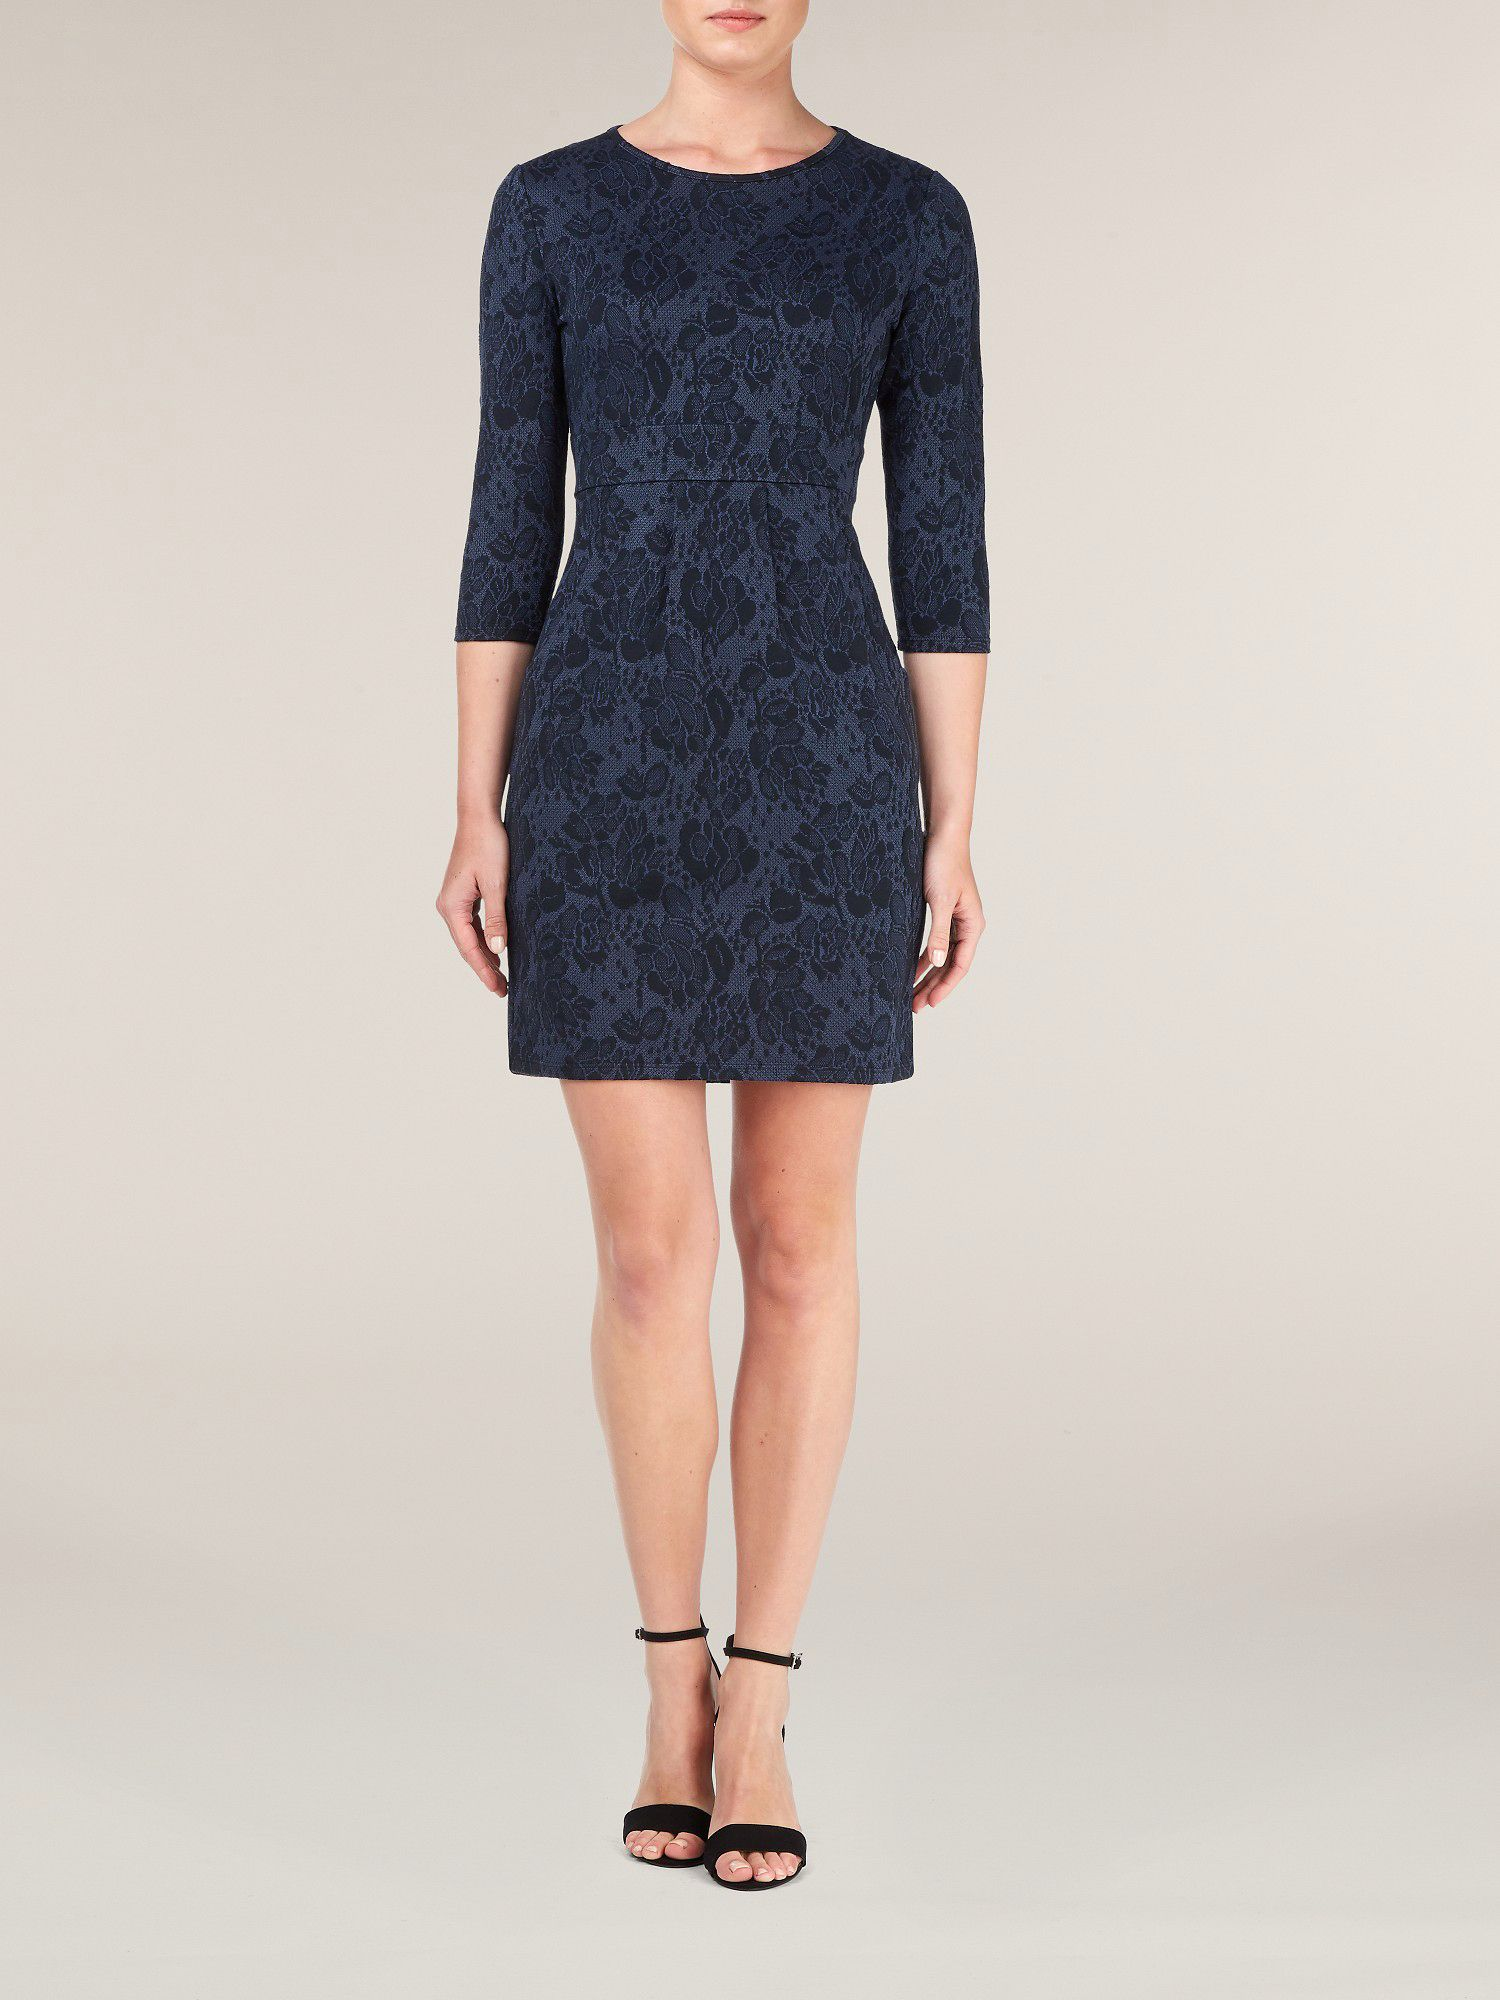 Rose jacquard dress